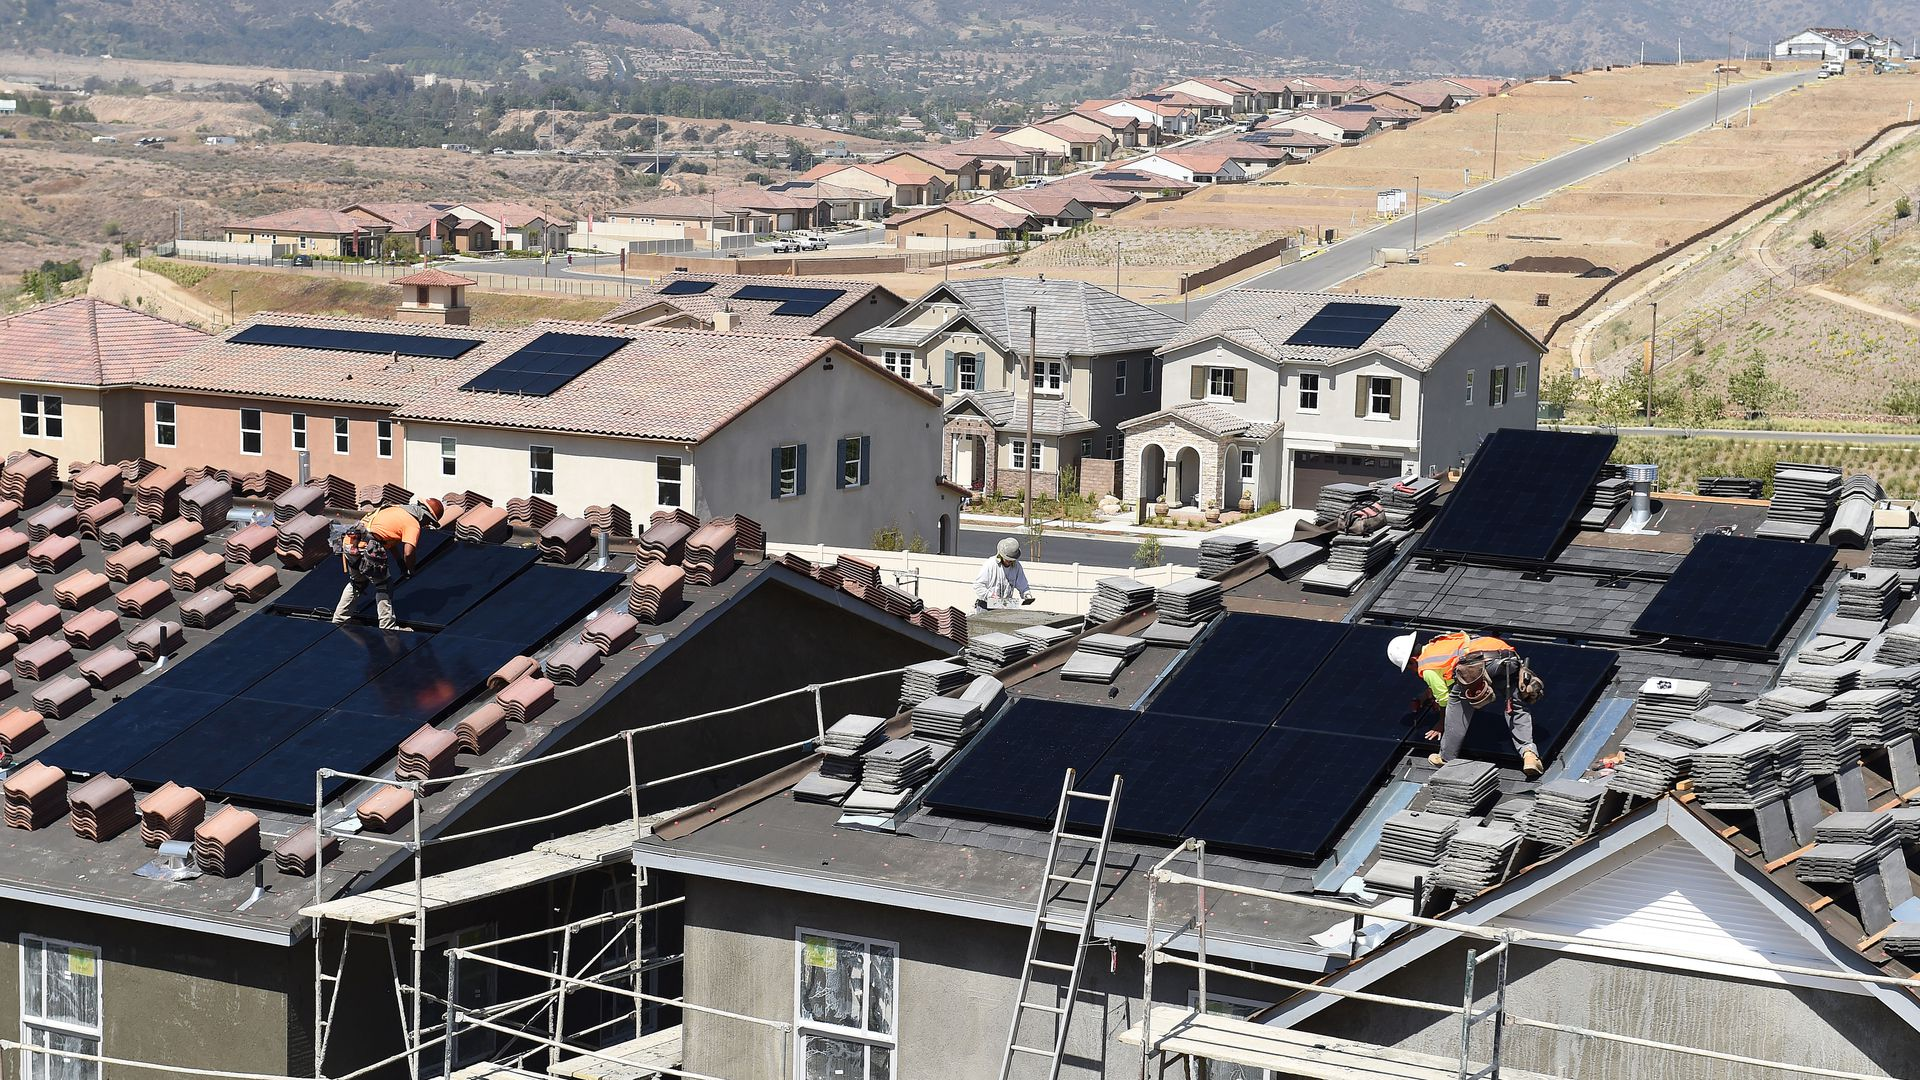 Workers install solar panels on the roofs of homes under construction south of Corona Thursday morning May 3, 2018.